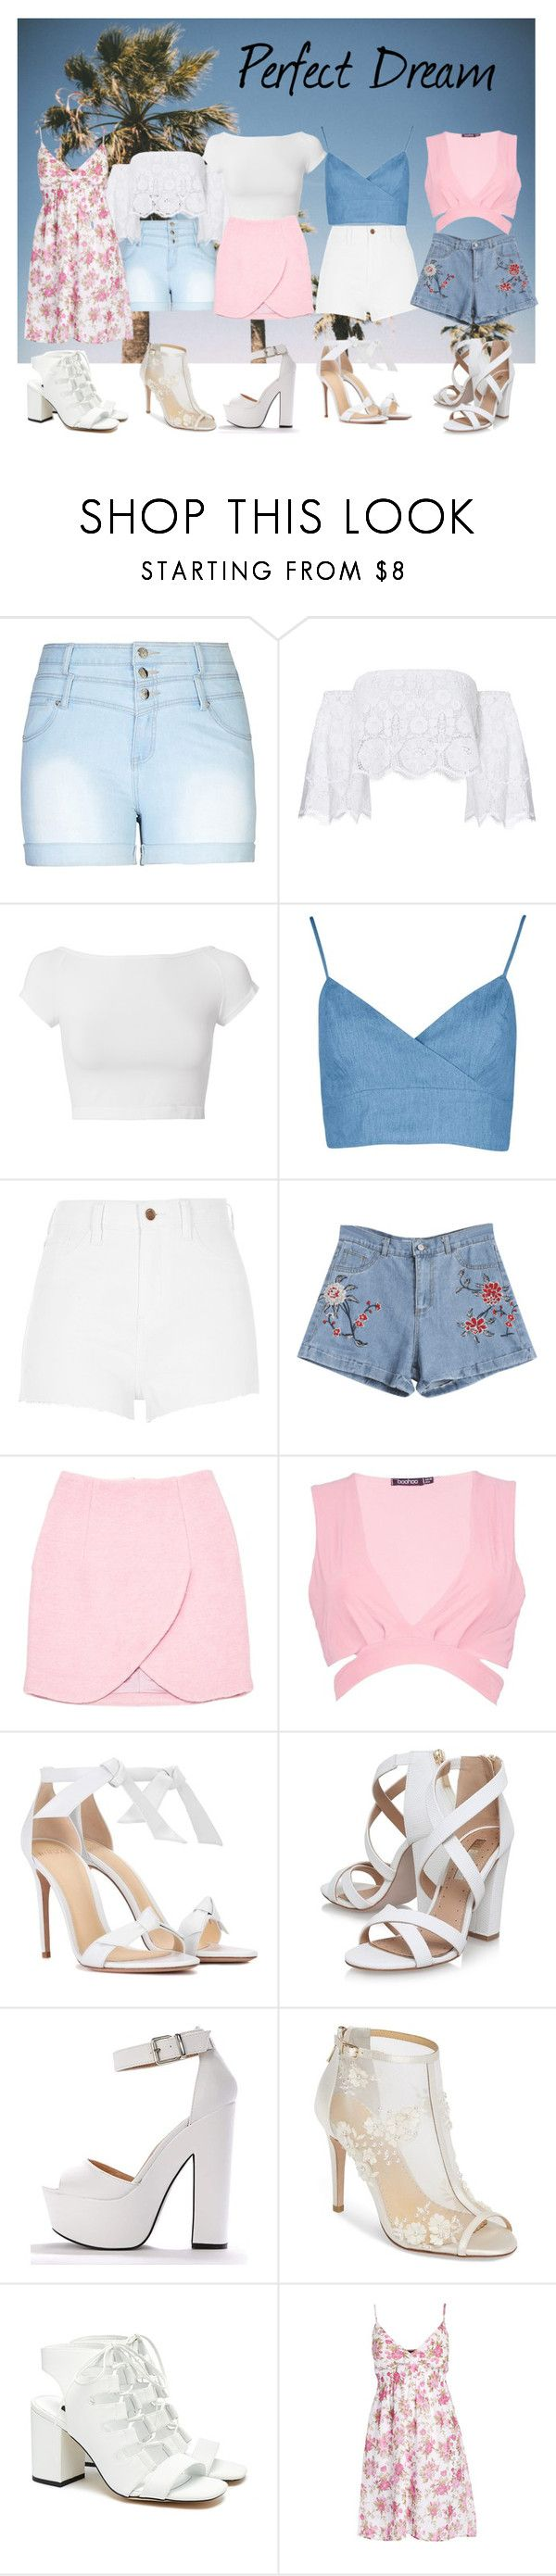 """""""Set 117"""" by jen28pup on Polyvore featuring City Chic, Miguelina, Helmut Lang, River Island, Carven, Boohoo, Alexandre Birman, Miss KG, Bella Belle and Senso"""